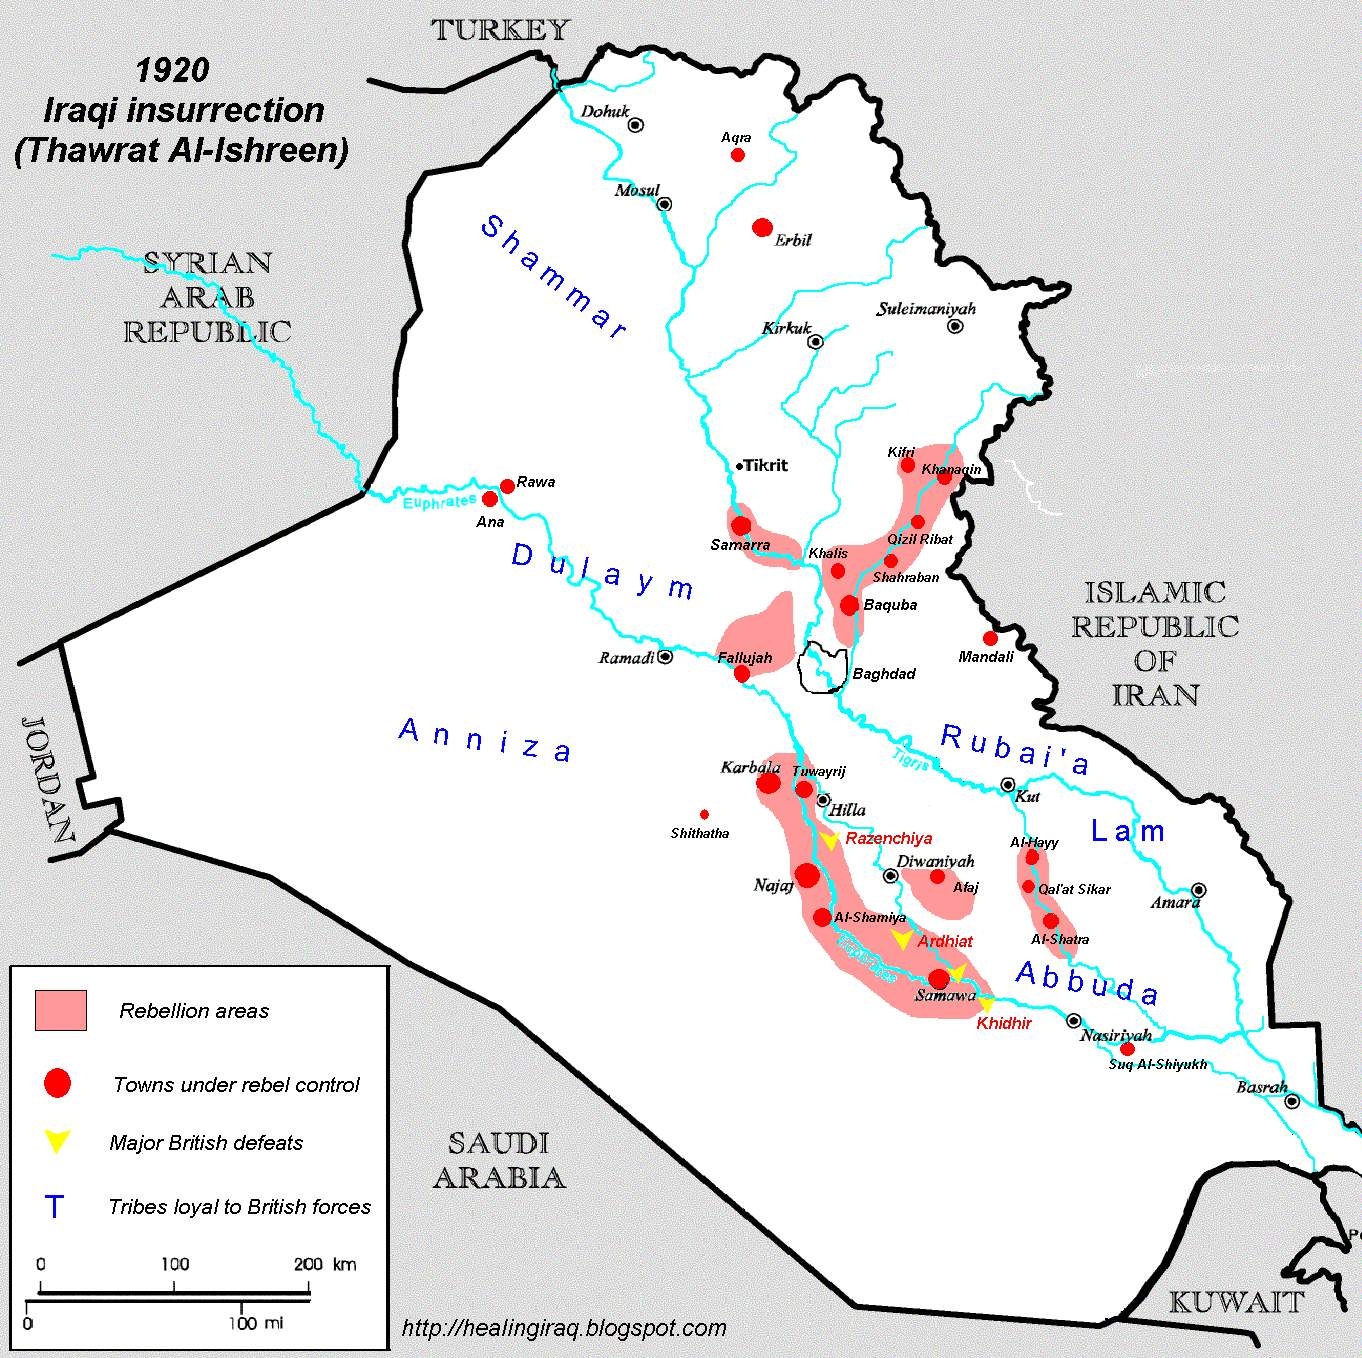 1920 Iraqi Rebellion against the British